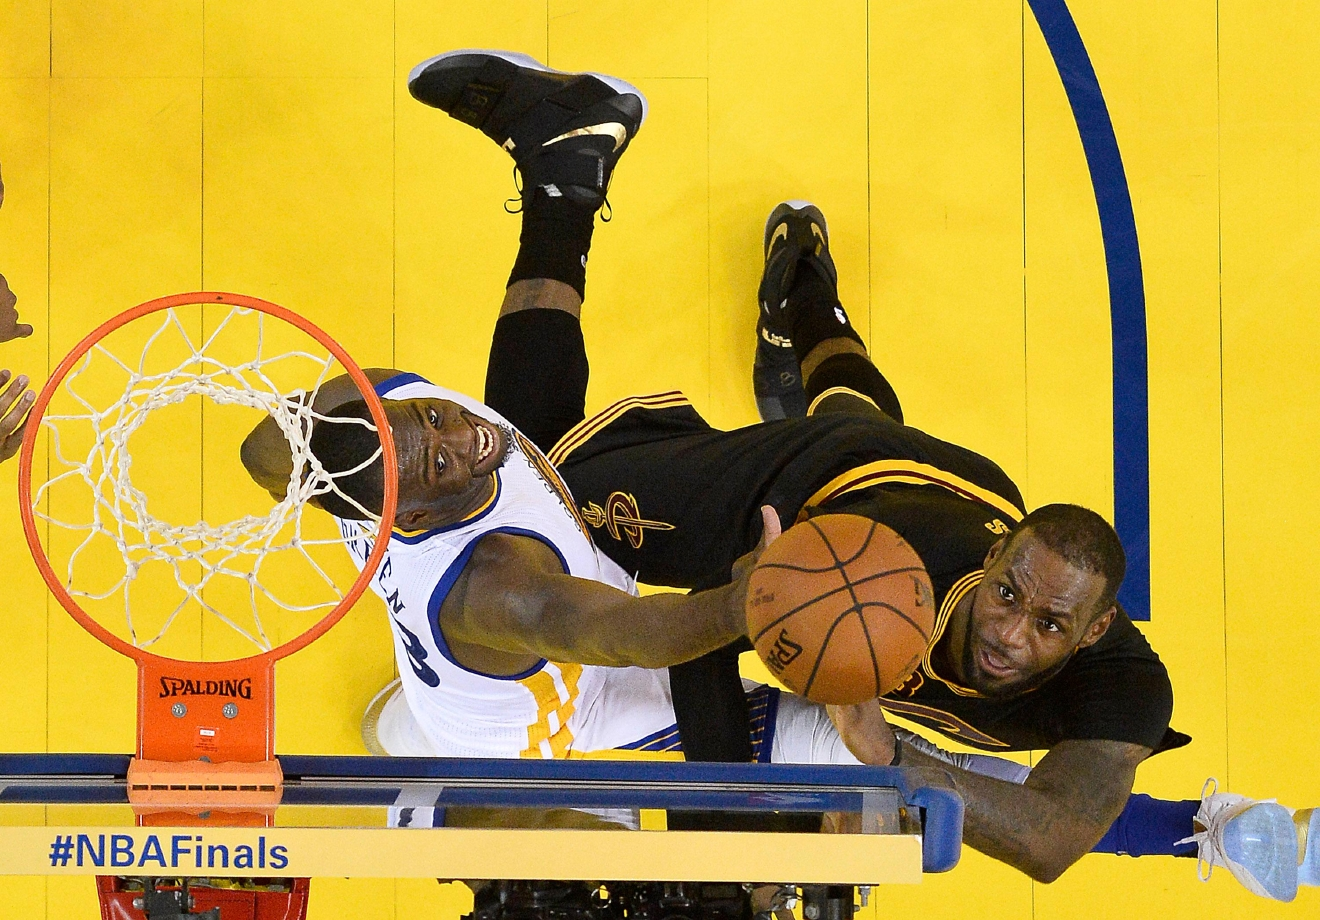 Cleveland Cavaliers forward LeBron James, right, shoots against Golden State Warriors forward Draymond Green during the second half of Game 7 of basketball's NBA Finals in Oakland, Calif., Sunday, June 19, 2016. The Cavaliers won 93-89. (John G. Mabanglo, European Pressphoto Agency via AP, Pool)